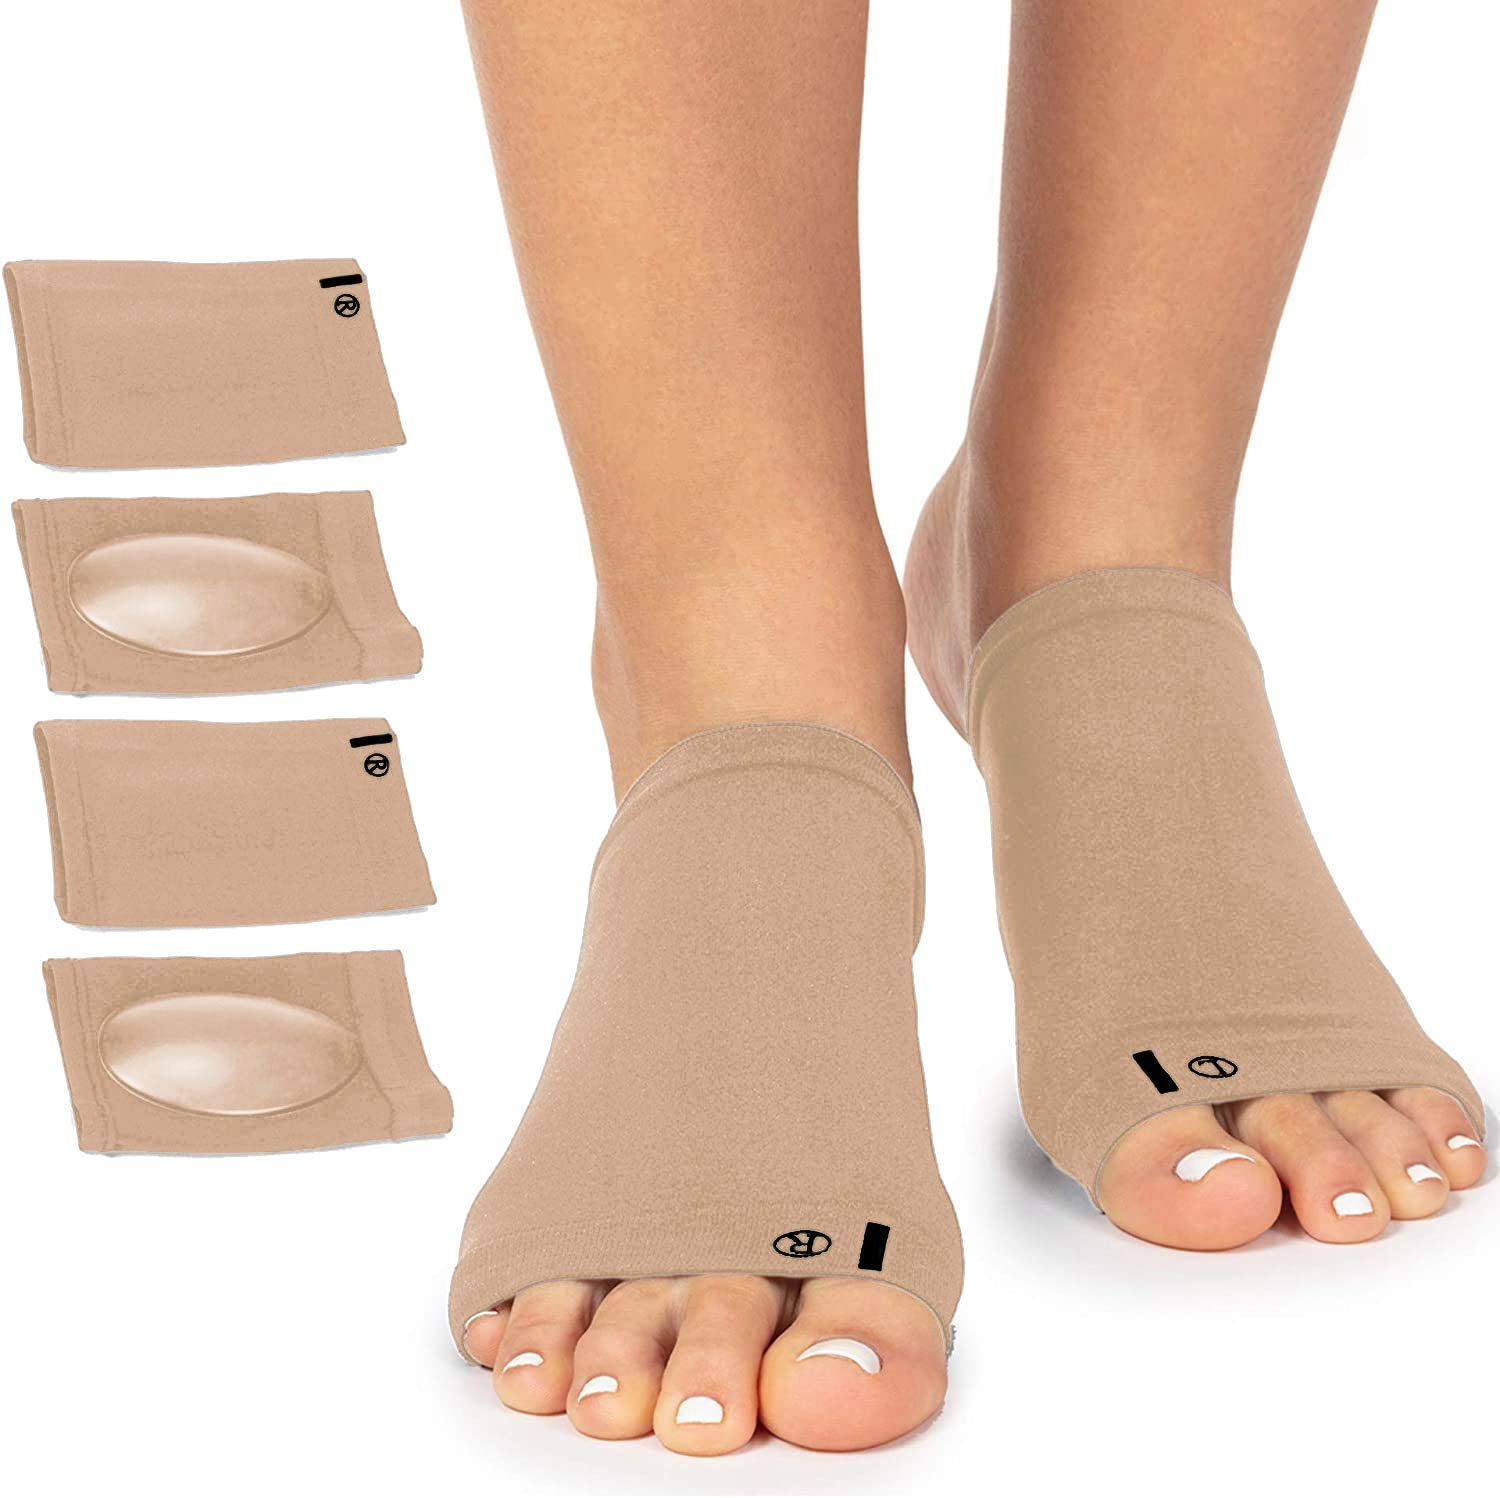 Arch Support Brace for Flat Feet with Gel Pad Inside - 2 Pairs - Plantar Fasciitis Support Brace - Compression Arch Sleeves for Women, Men - Foot Pain Relief for Planter Fasciitis, Arch Pain (Nude)